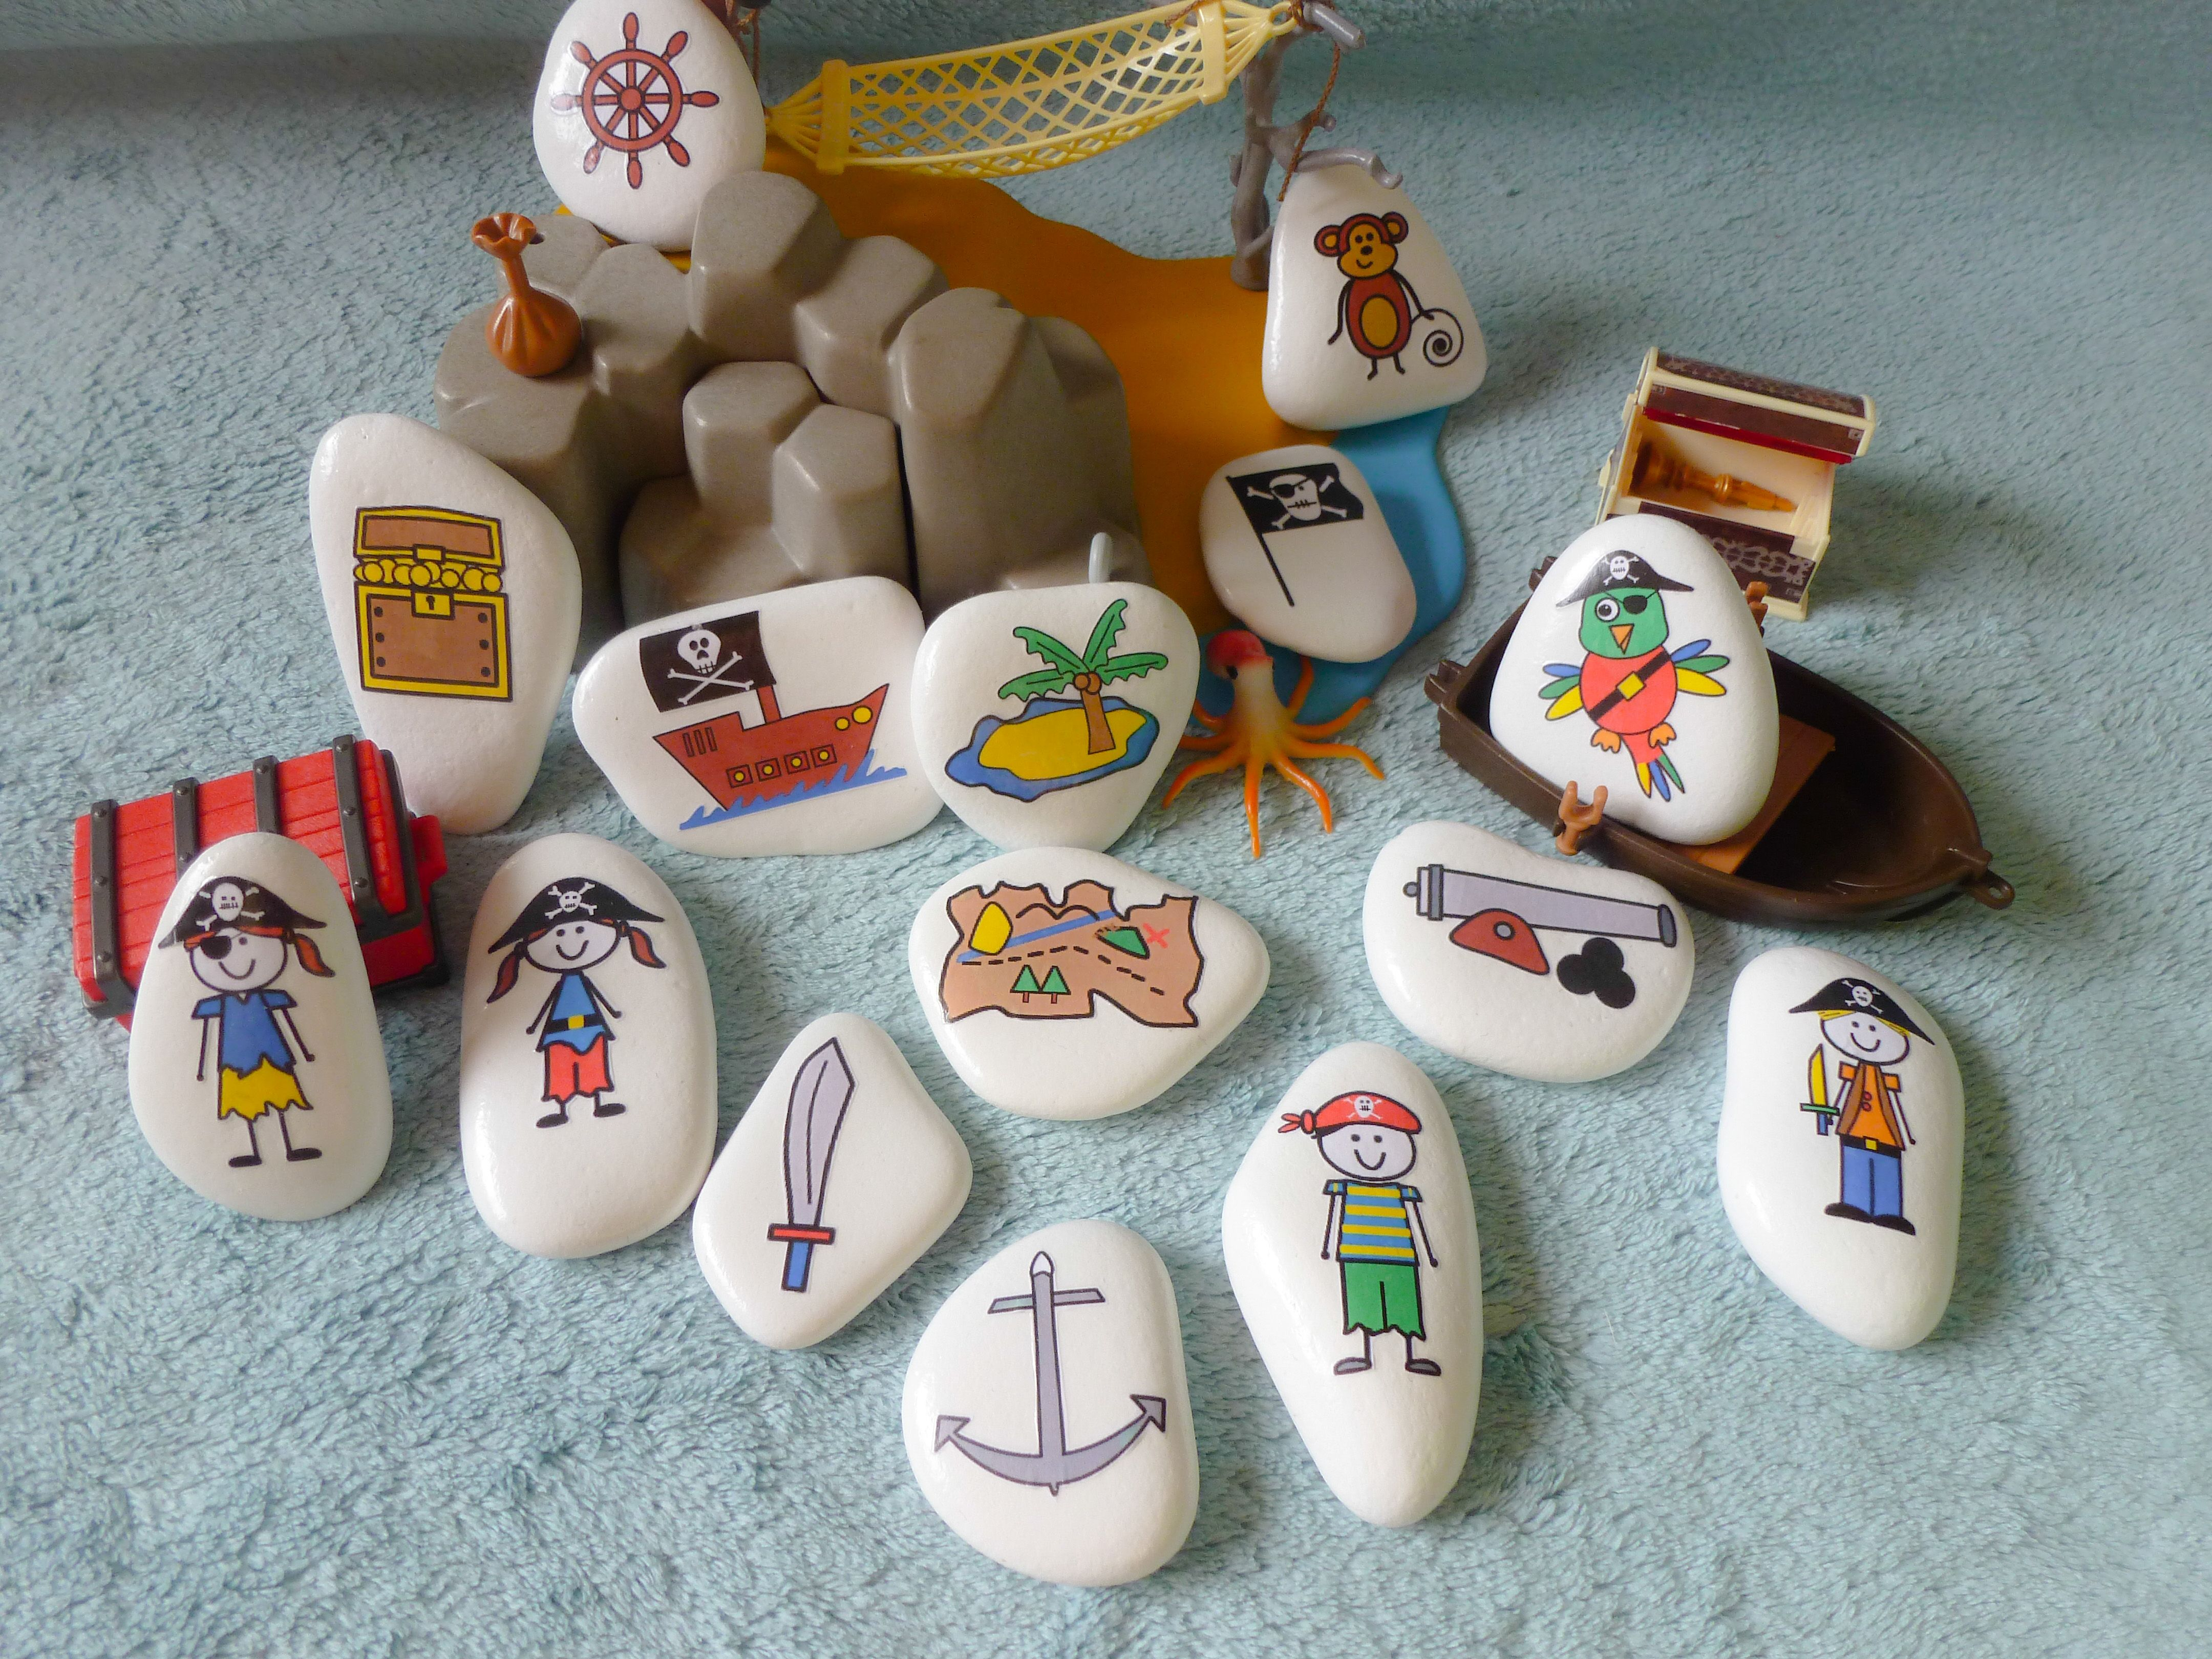 Pirate crafts for toddlers - Pirate Story Stones Www Etsy Com Uk Shop Storystoneslou